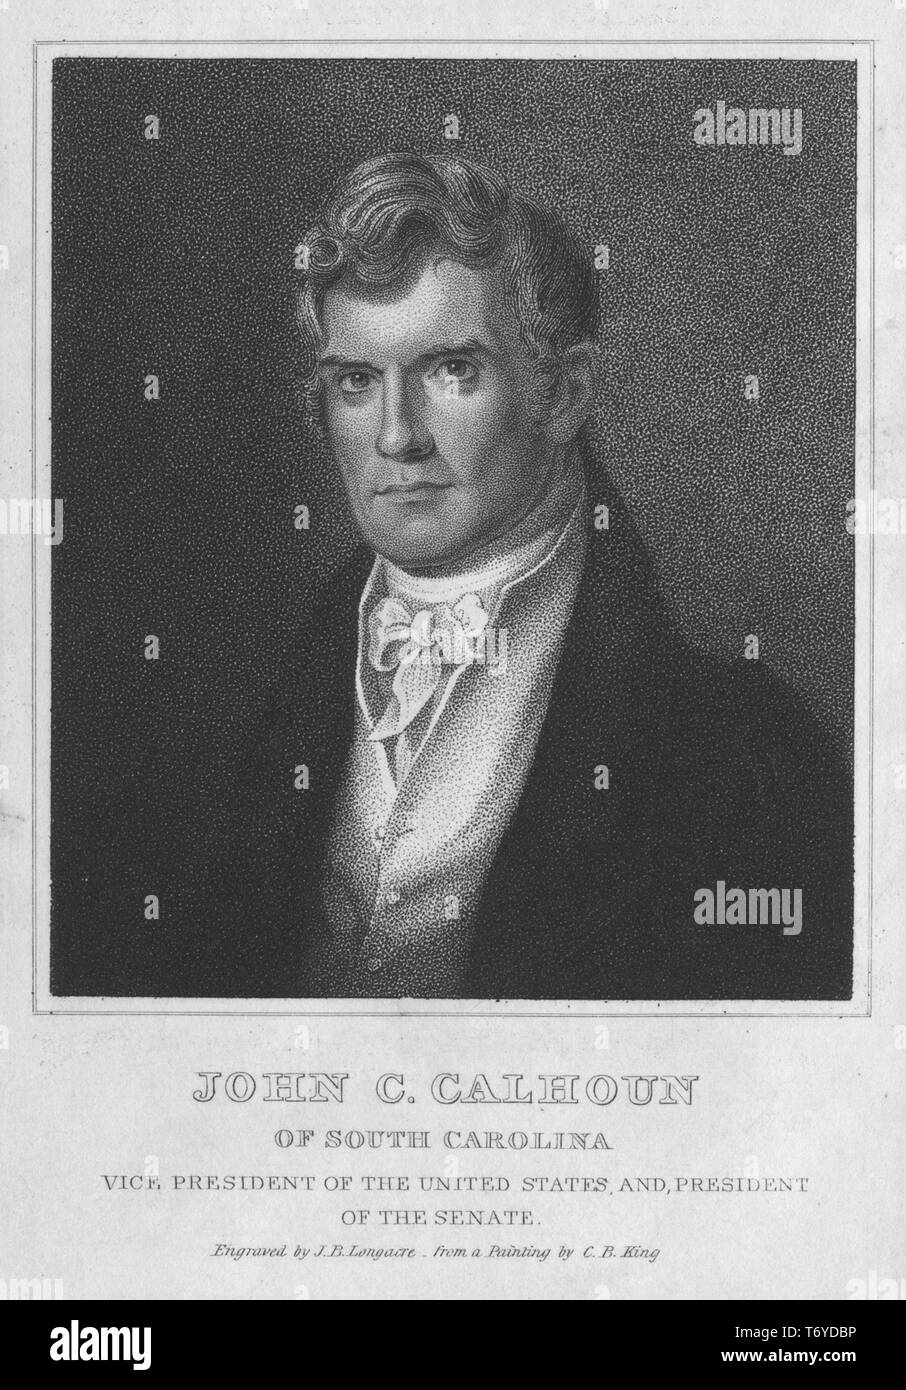 Engraved portrait of John Caldwell Calhoun, Vice President of the United States, and President of the Senate, an American statesman and political theorist from South Carolina, 1843. From the New York Public Library. () - Stock Image